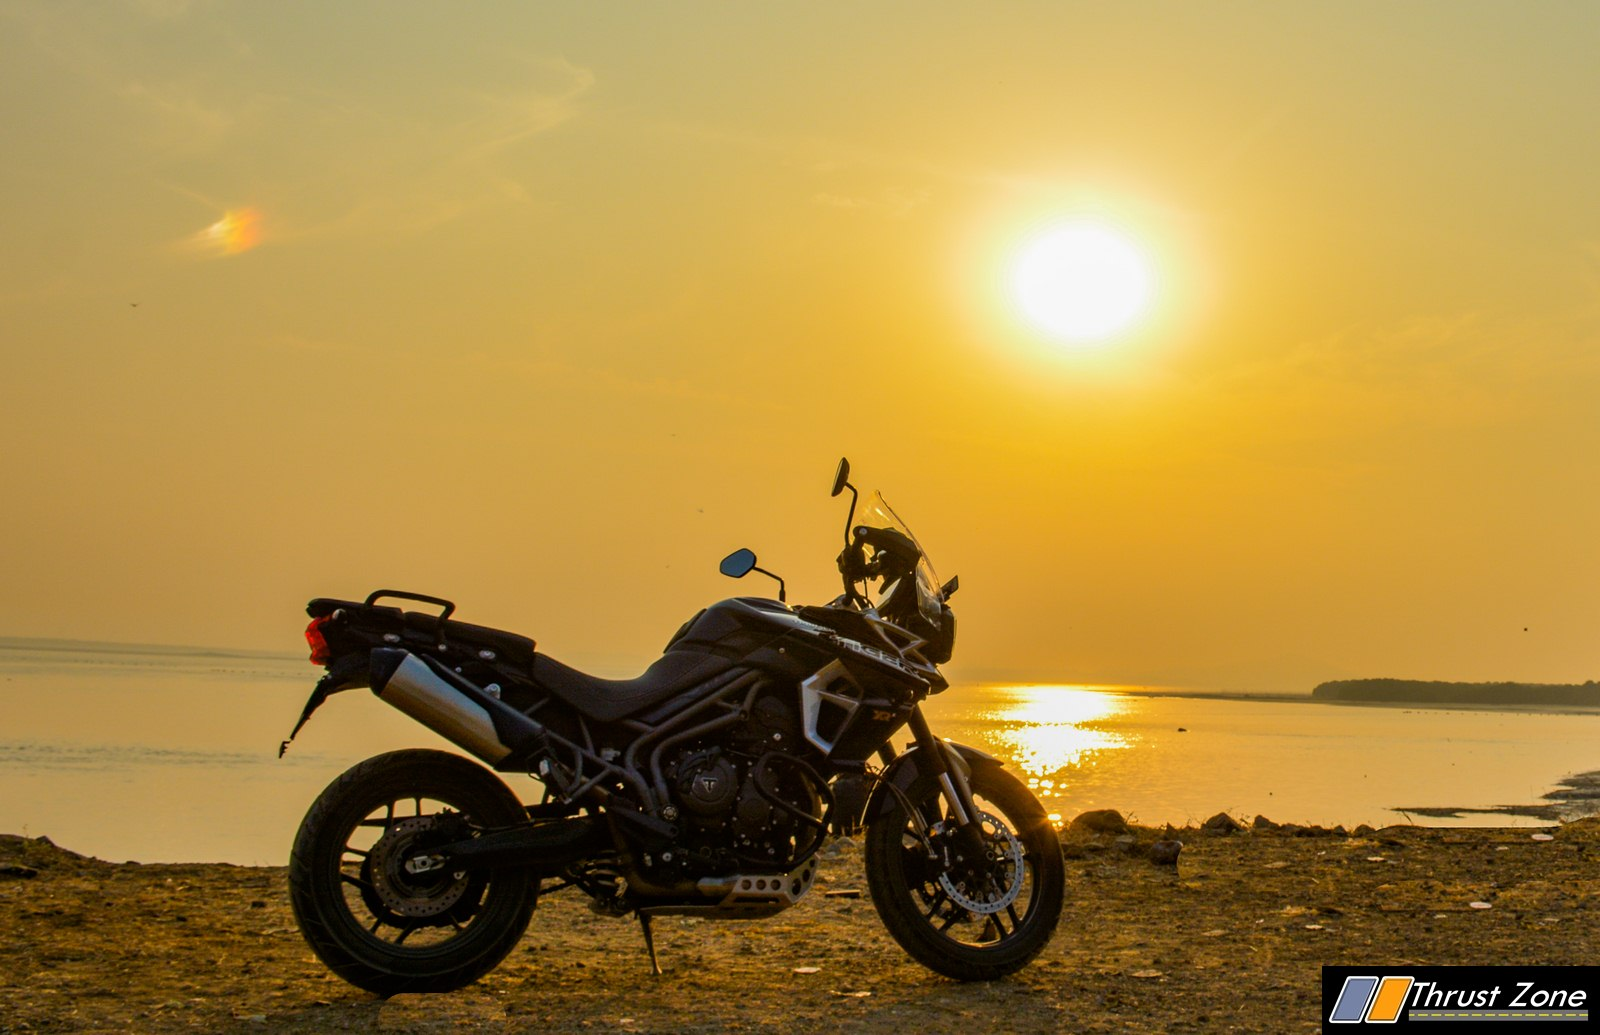 http://www.thrustzone.com/wp-content/uploads/2019/01/2018-Triumph-Tiger-800-india-review-16.jpg